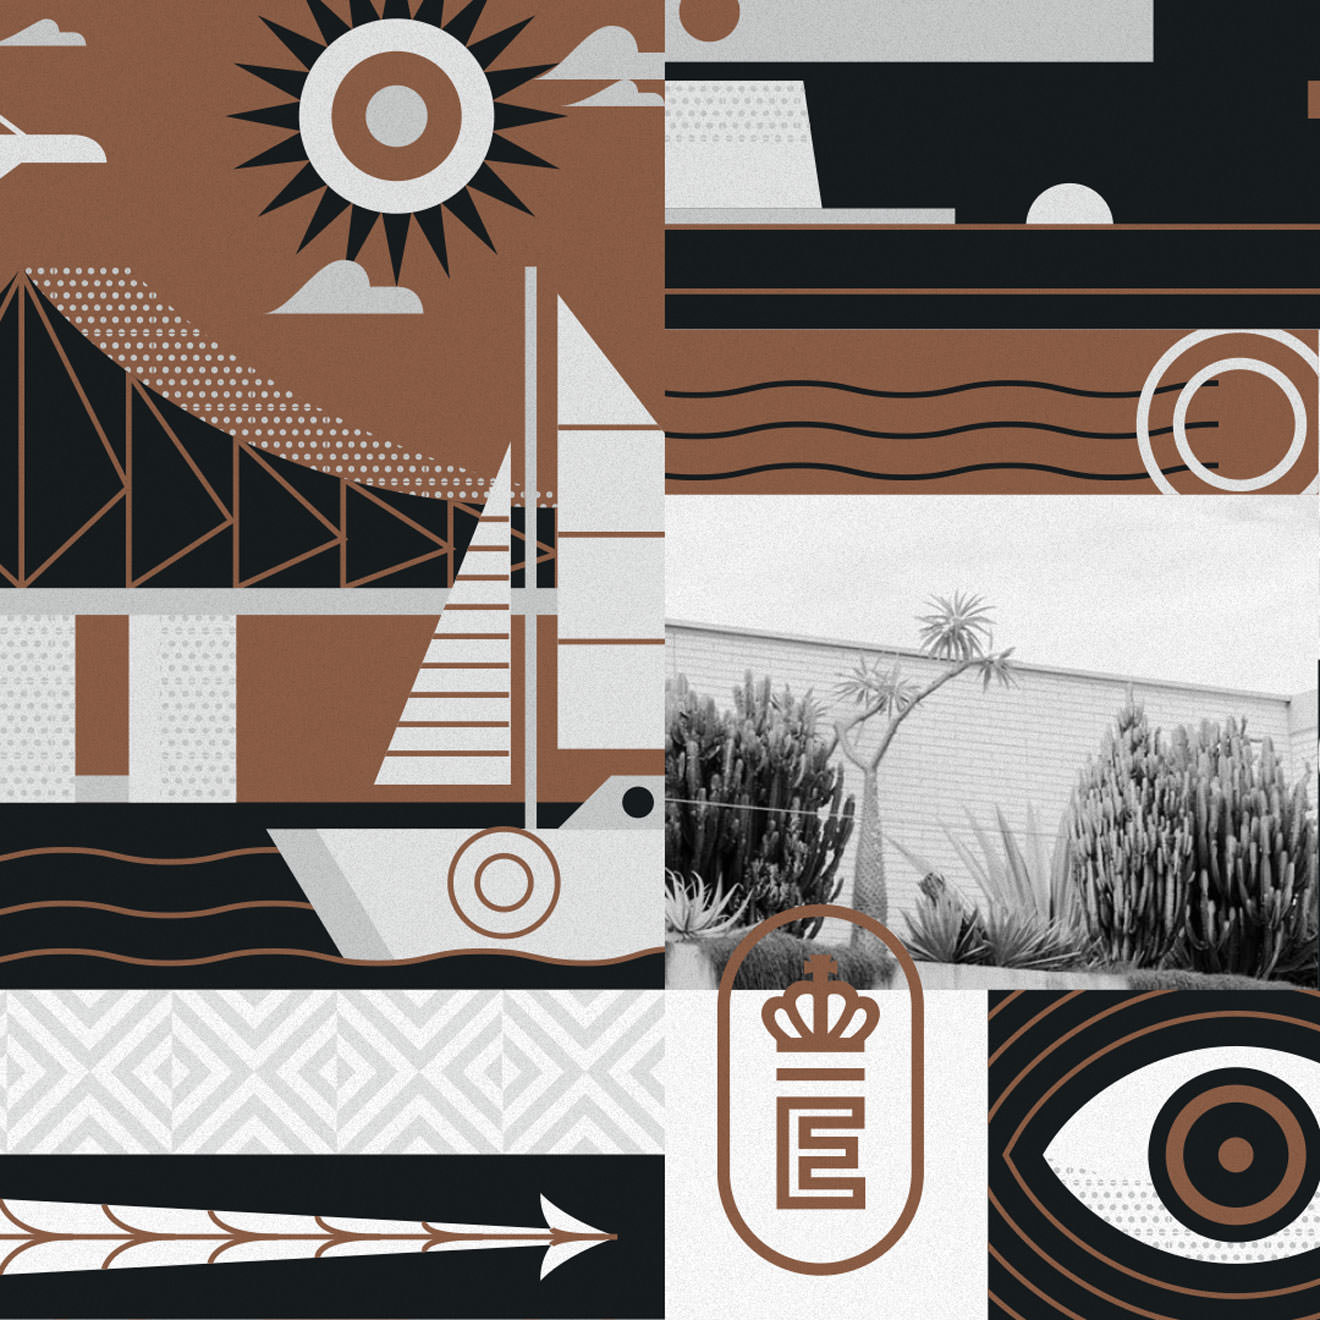 Brown, grey and white geometric illustration featuring a sailboat, an eyeball, a sun